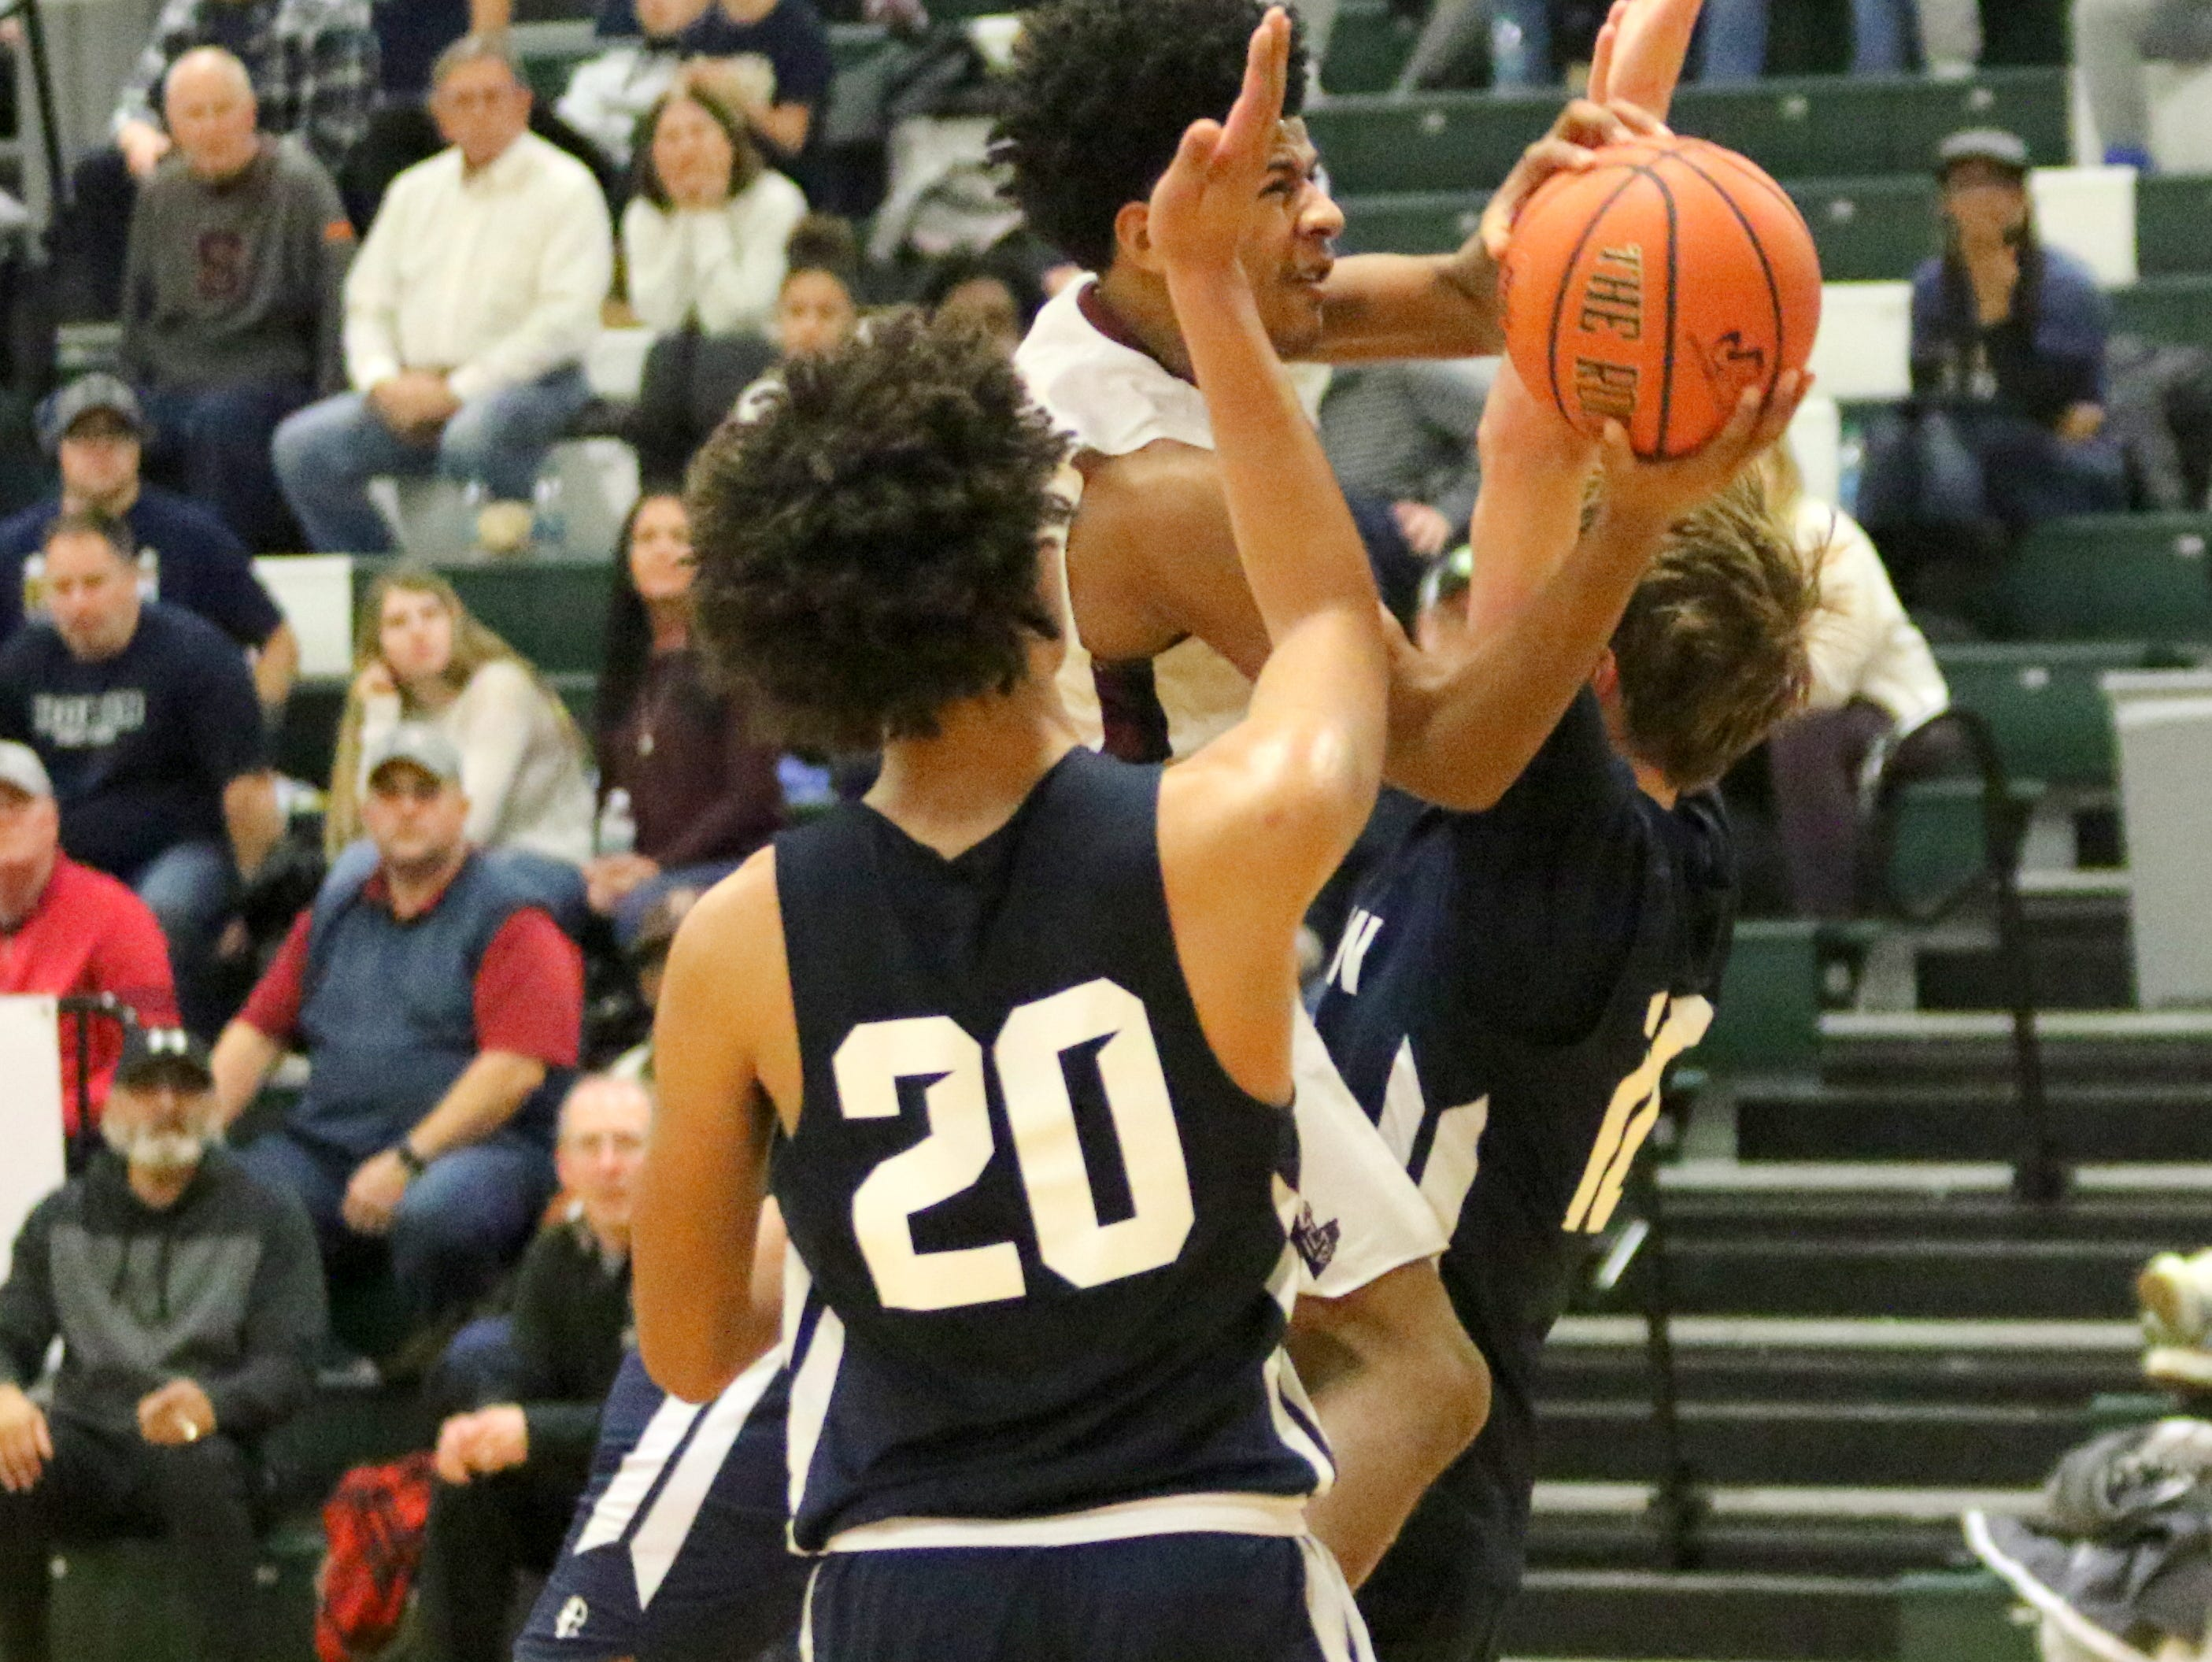 Archbishop Hoban was a 62-57 winner over Elmira in the boys third-place game in the National Division at the Josh Palmer Fund Elmira Holiday Inn Classic on Dec. 30, 2018 at Elmira High School.